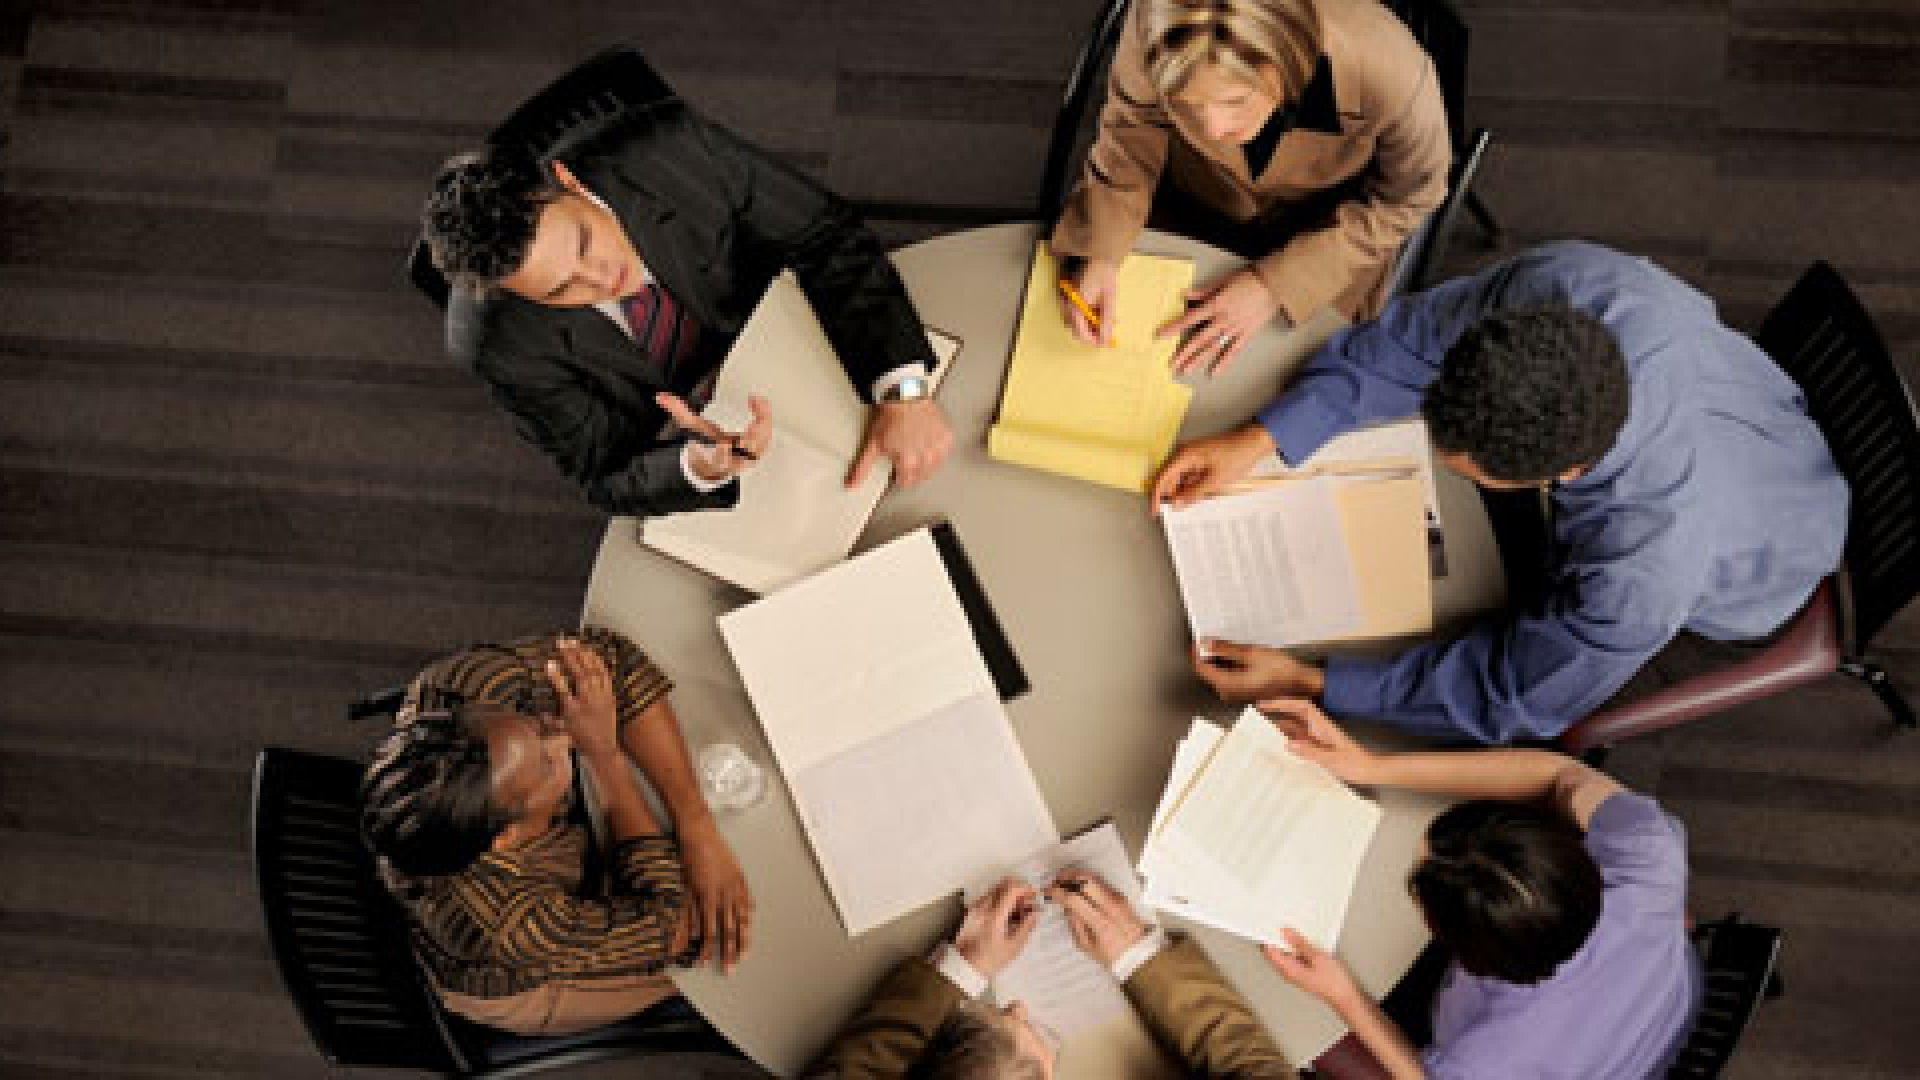 Meetings a Waste of Time? 6 Smart Ways to Fix Them